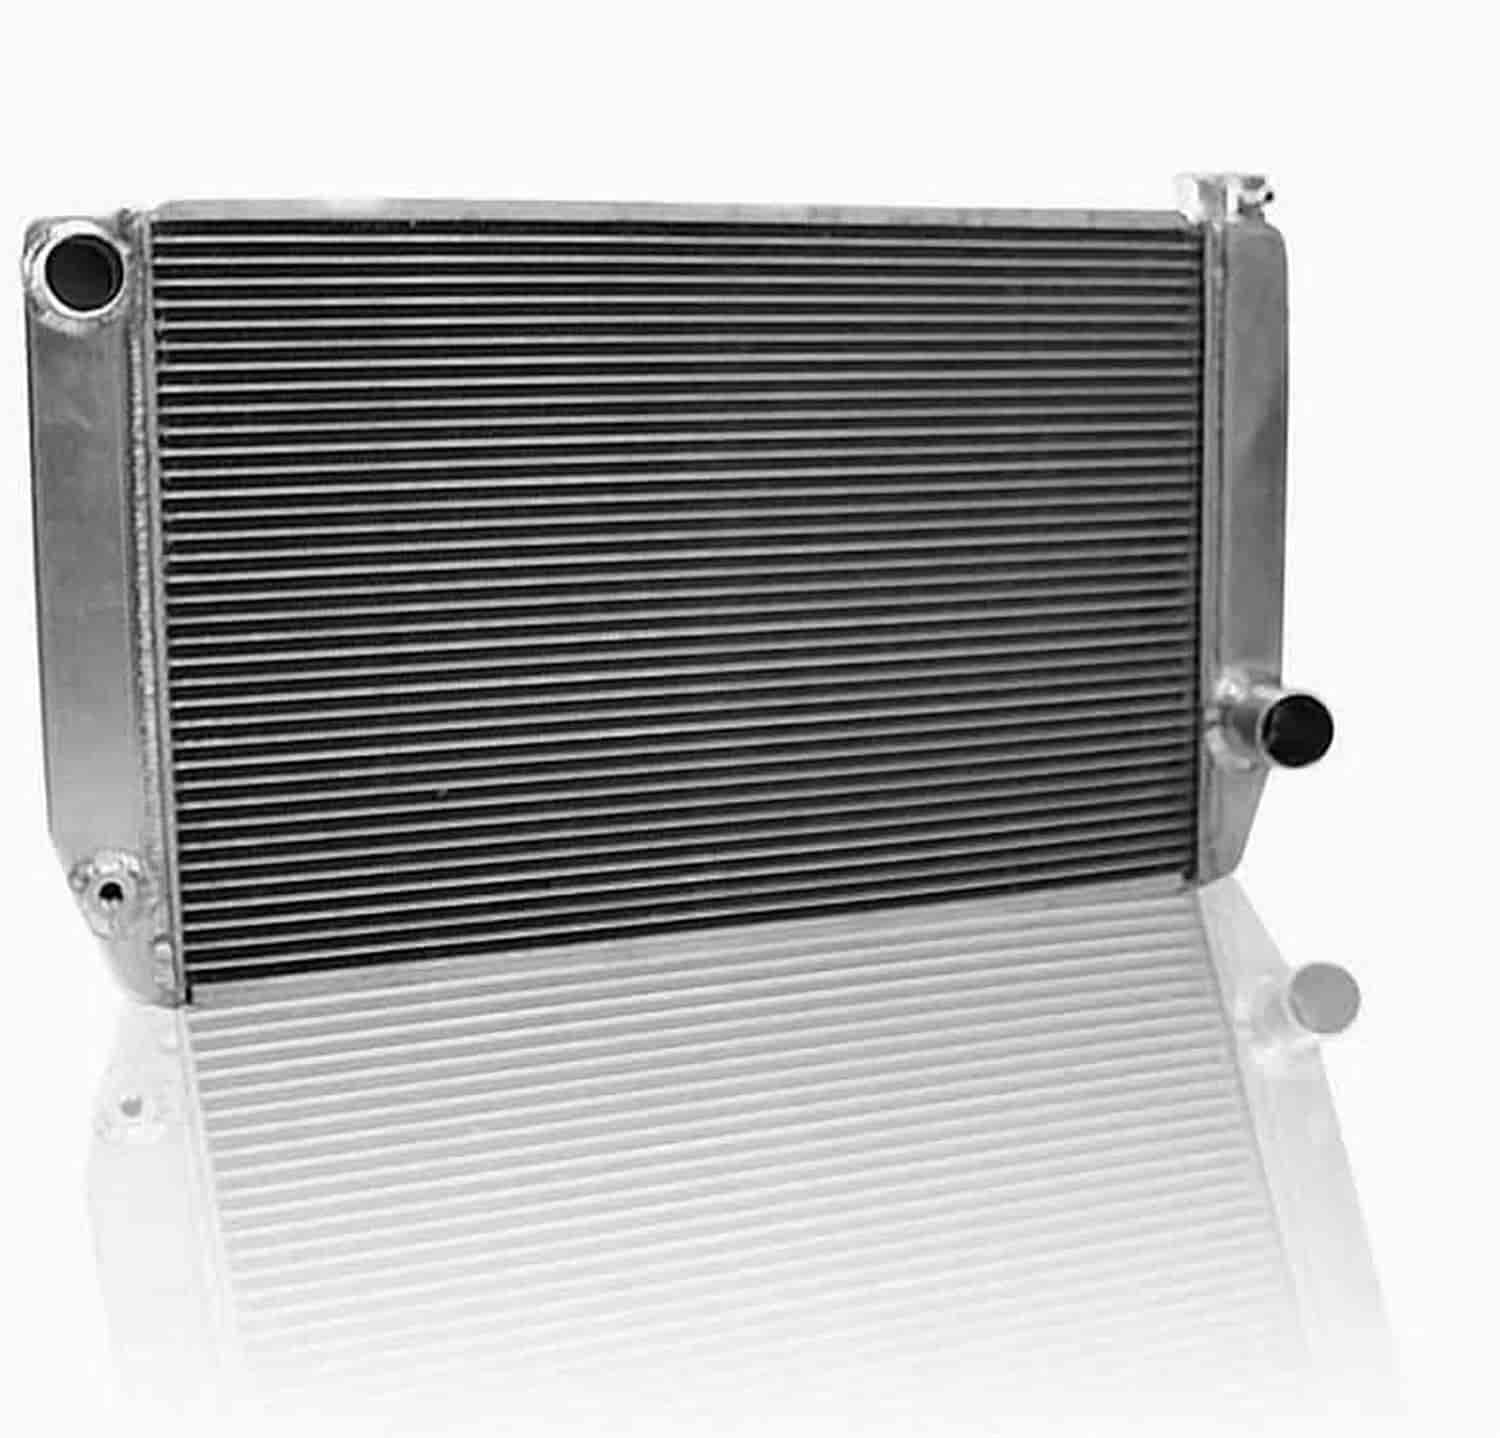 Griffin Radiators 1-55181-X